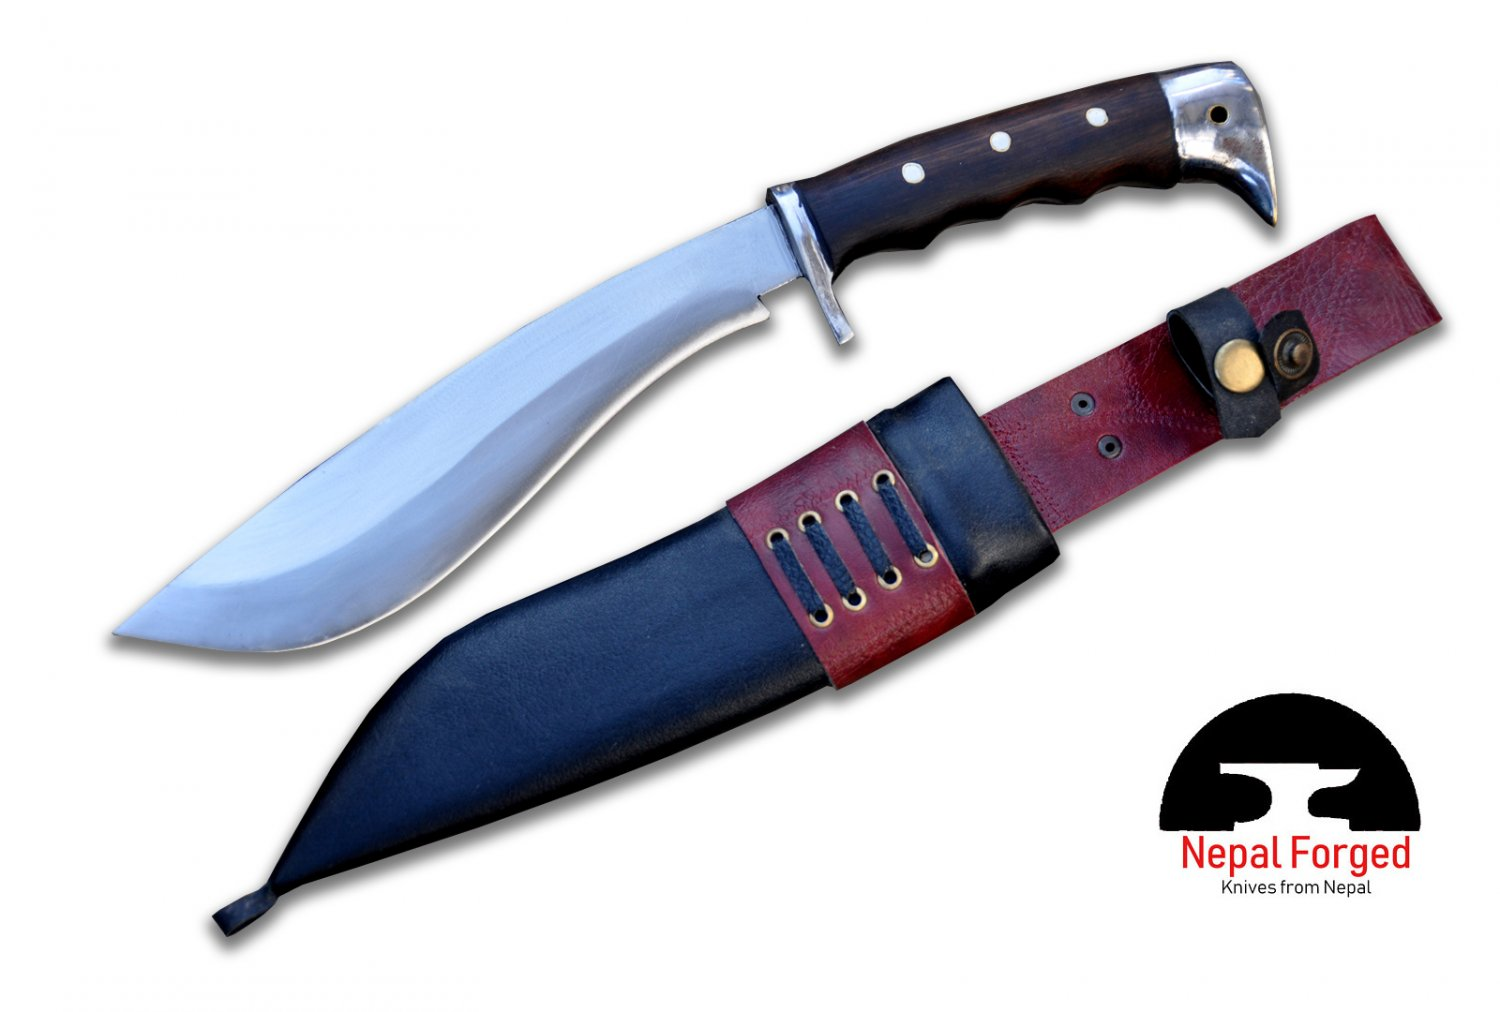 9 inches Blade Bowie knife-Handmade Bowie-Hunting knife-full tang machete-Ready to use